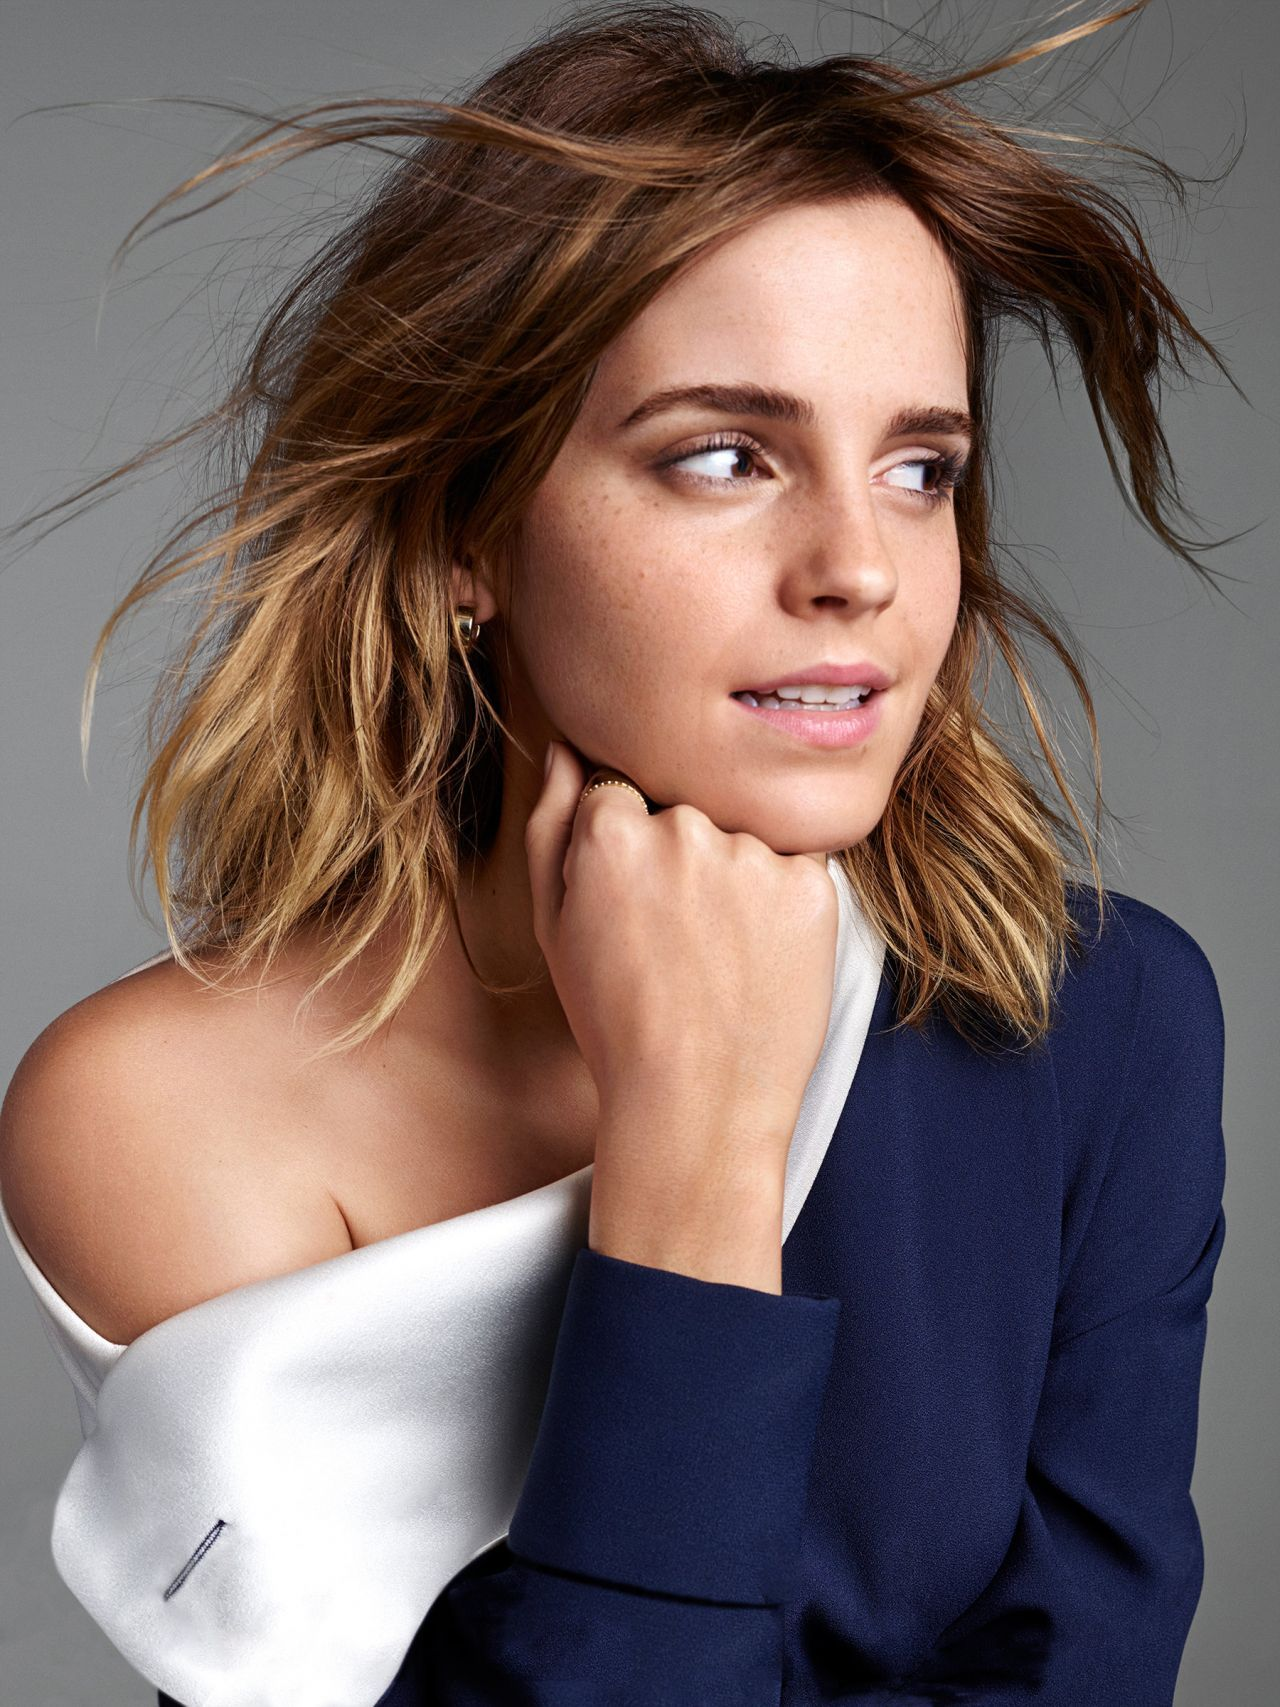 Emma Watson Nude Photos Video Exposed